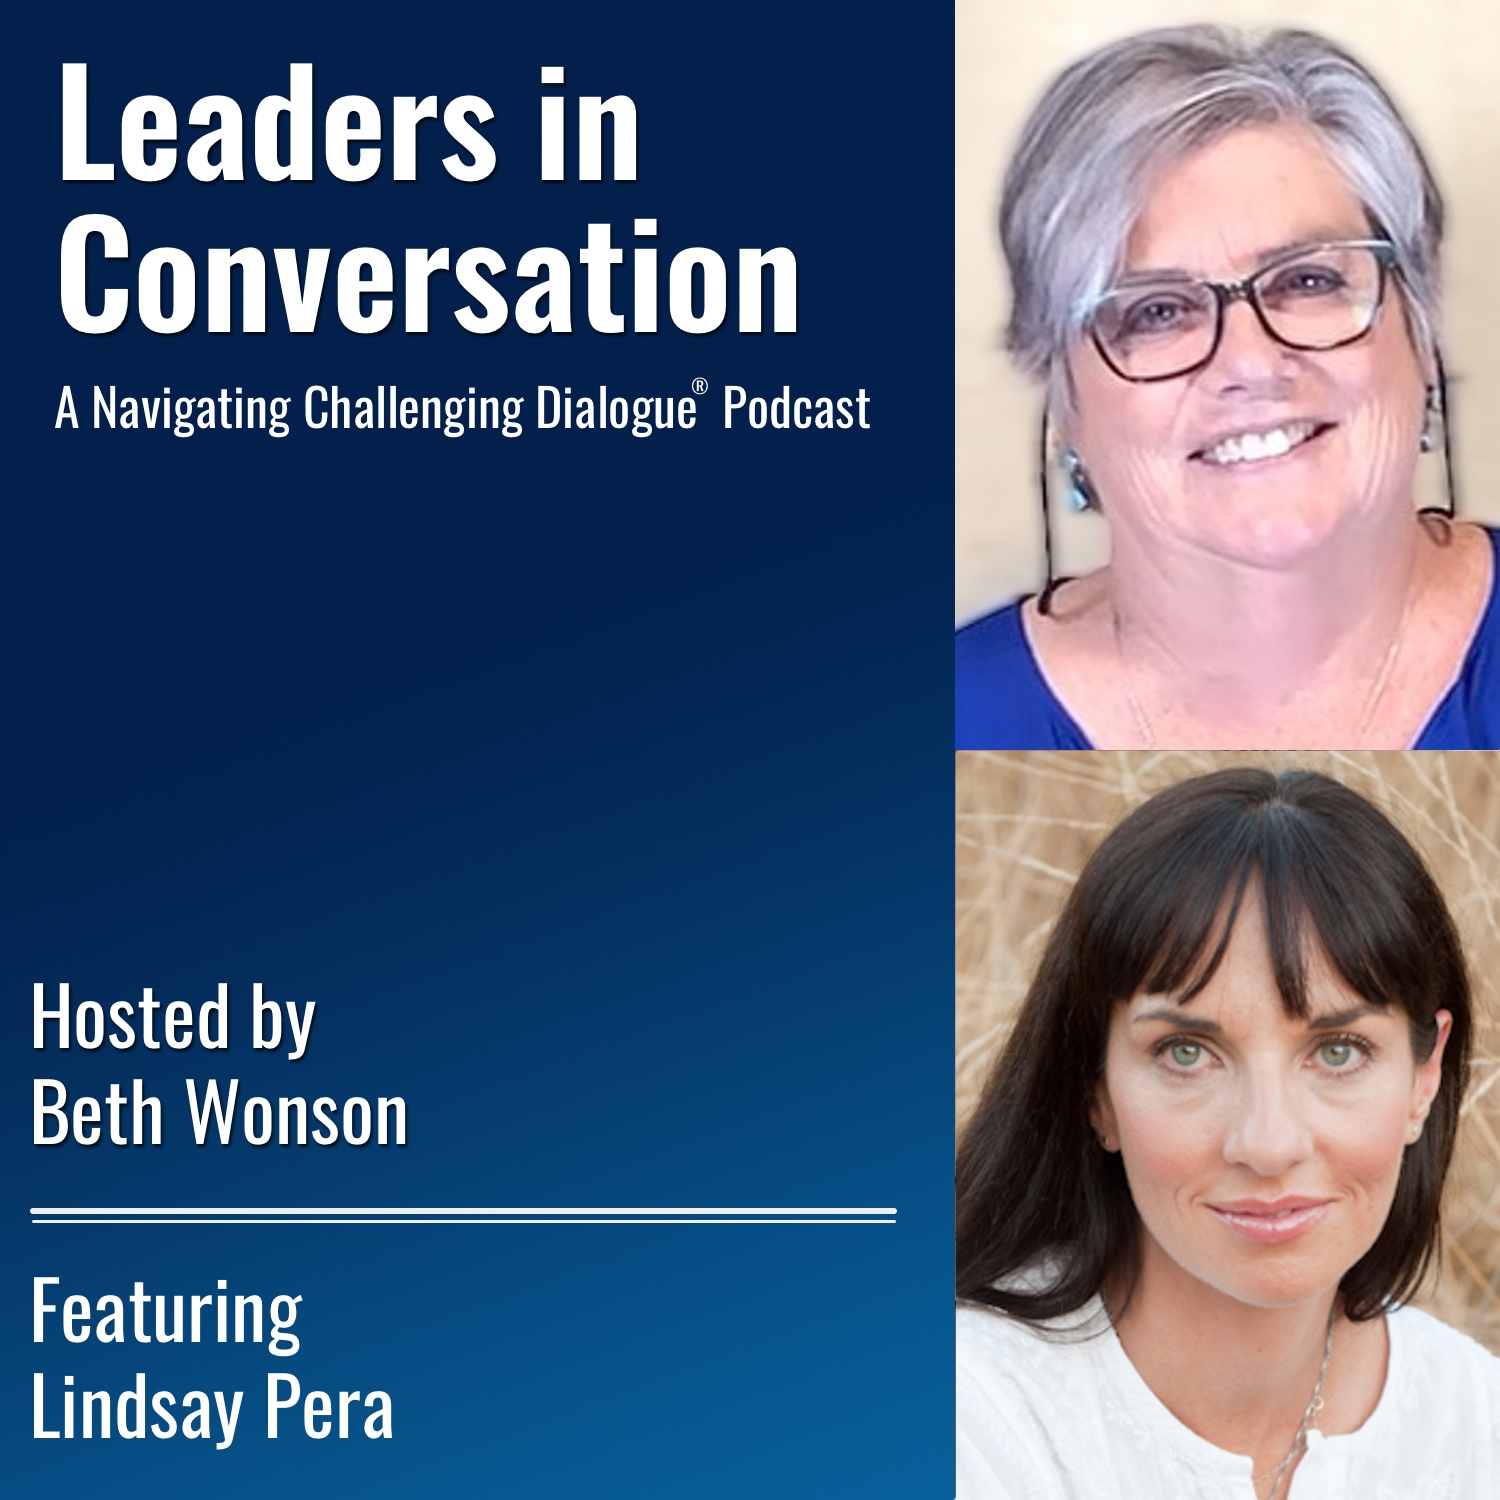 Leaders in Conversation Featuring Lindsay Pera